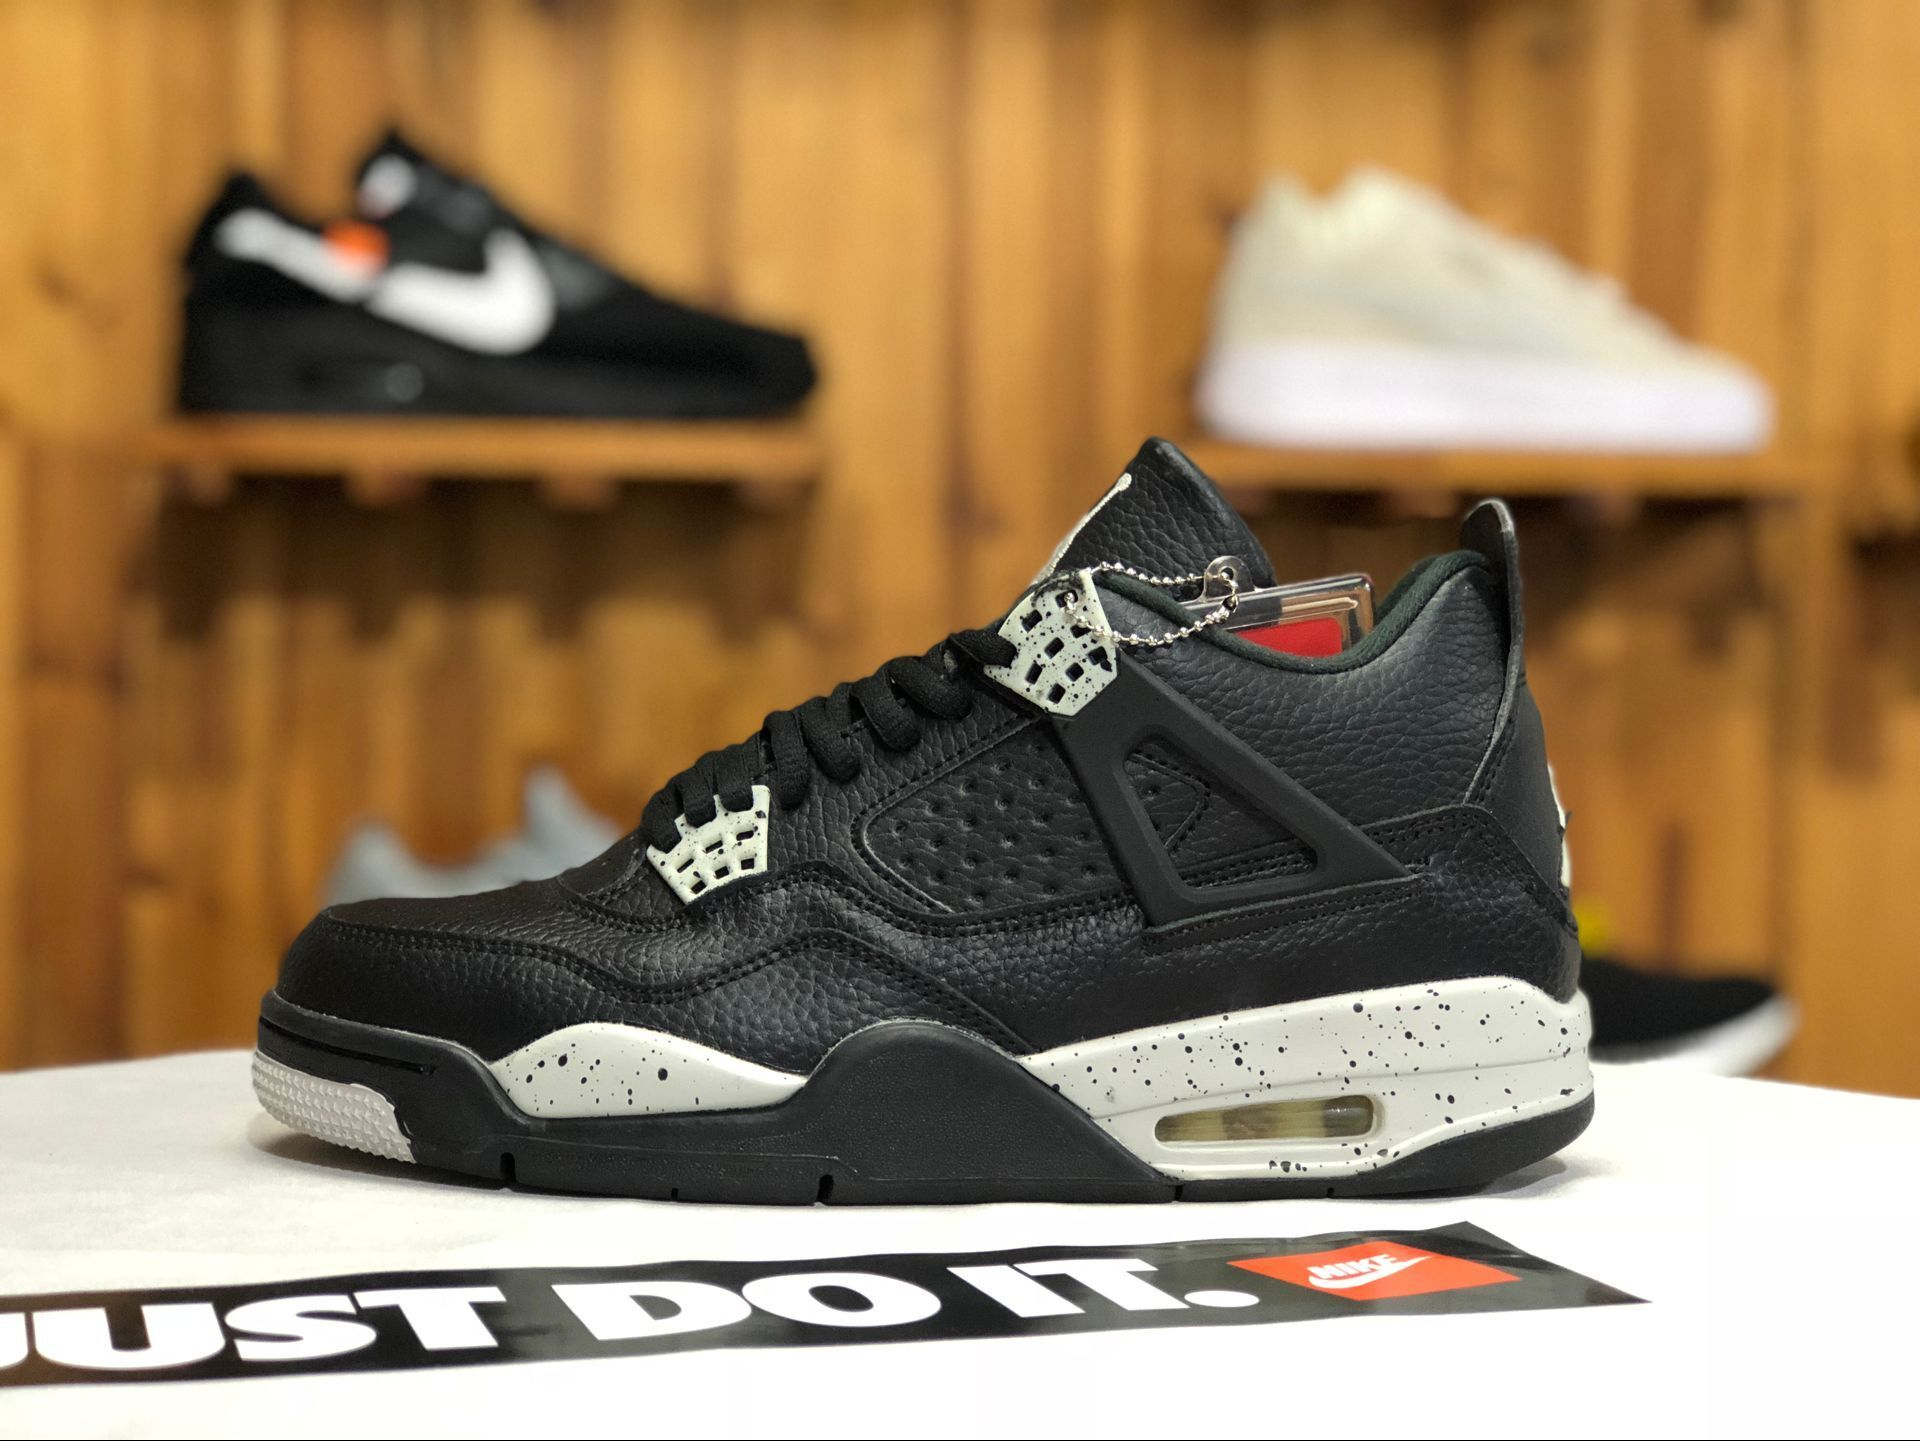 e48ee5a17106 Air Jordan 4 Retro LS Oreo Black Tech Grey-White Shoes 2019 | Air ...